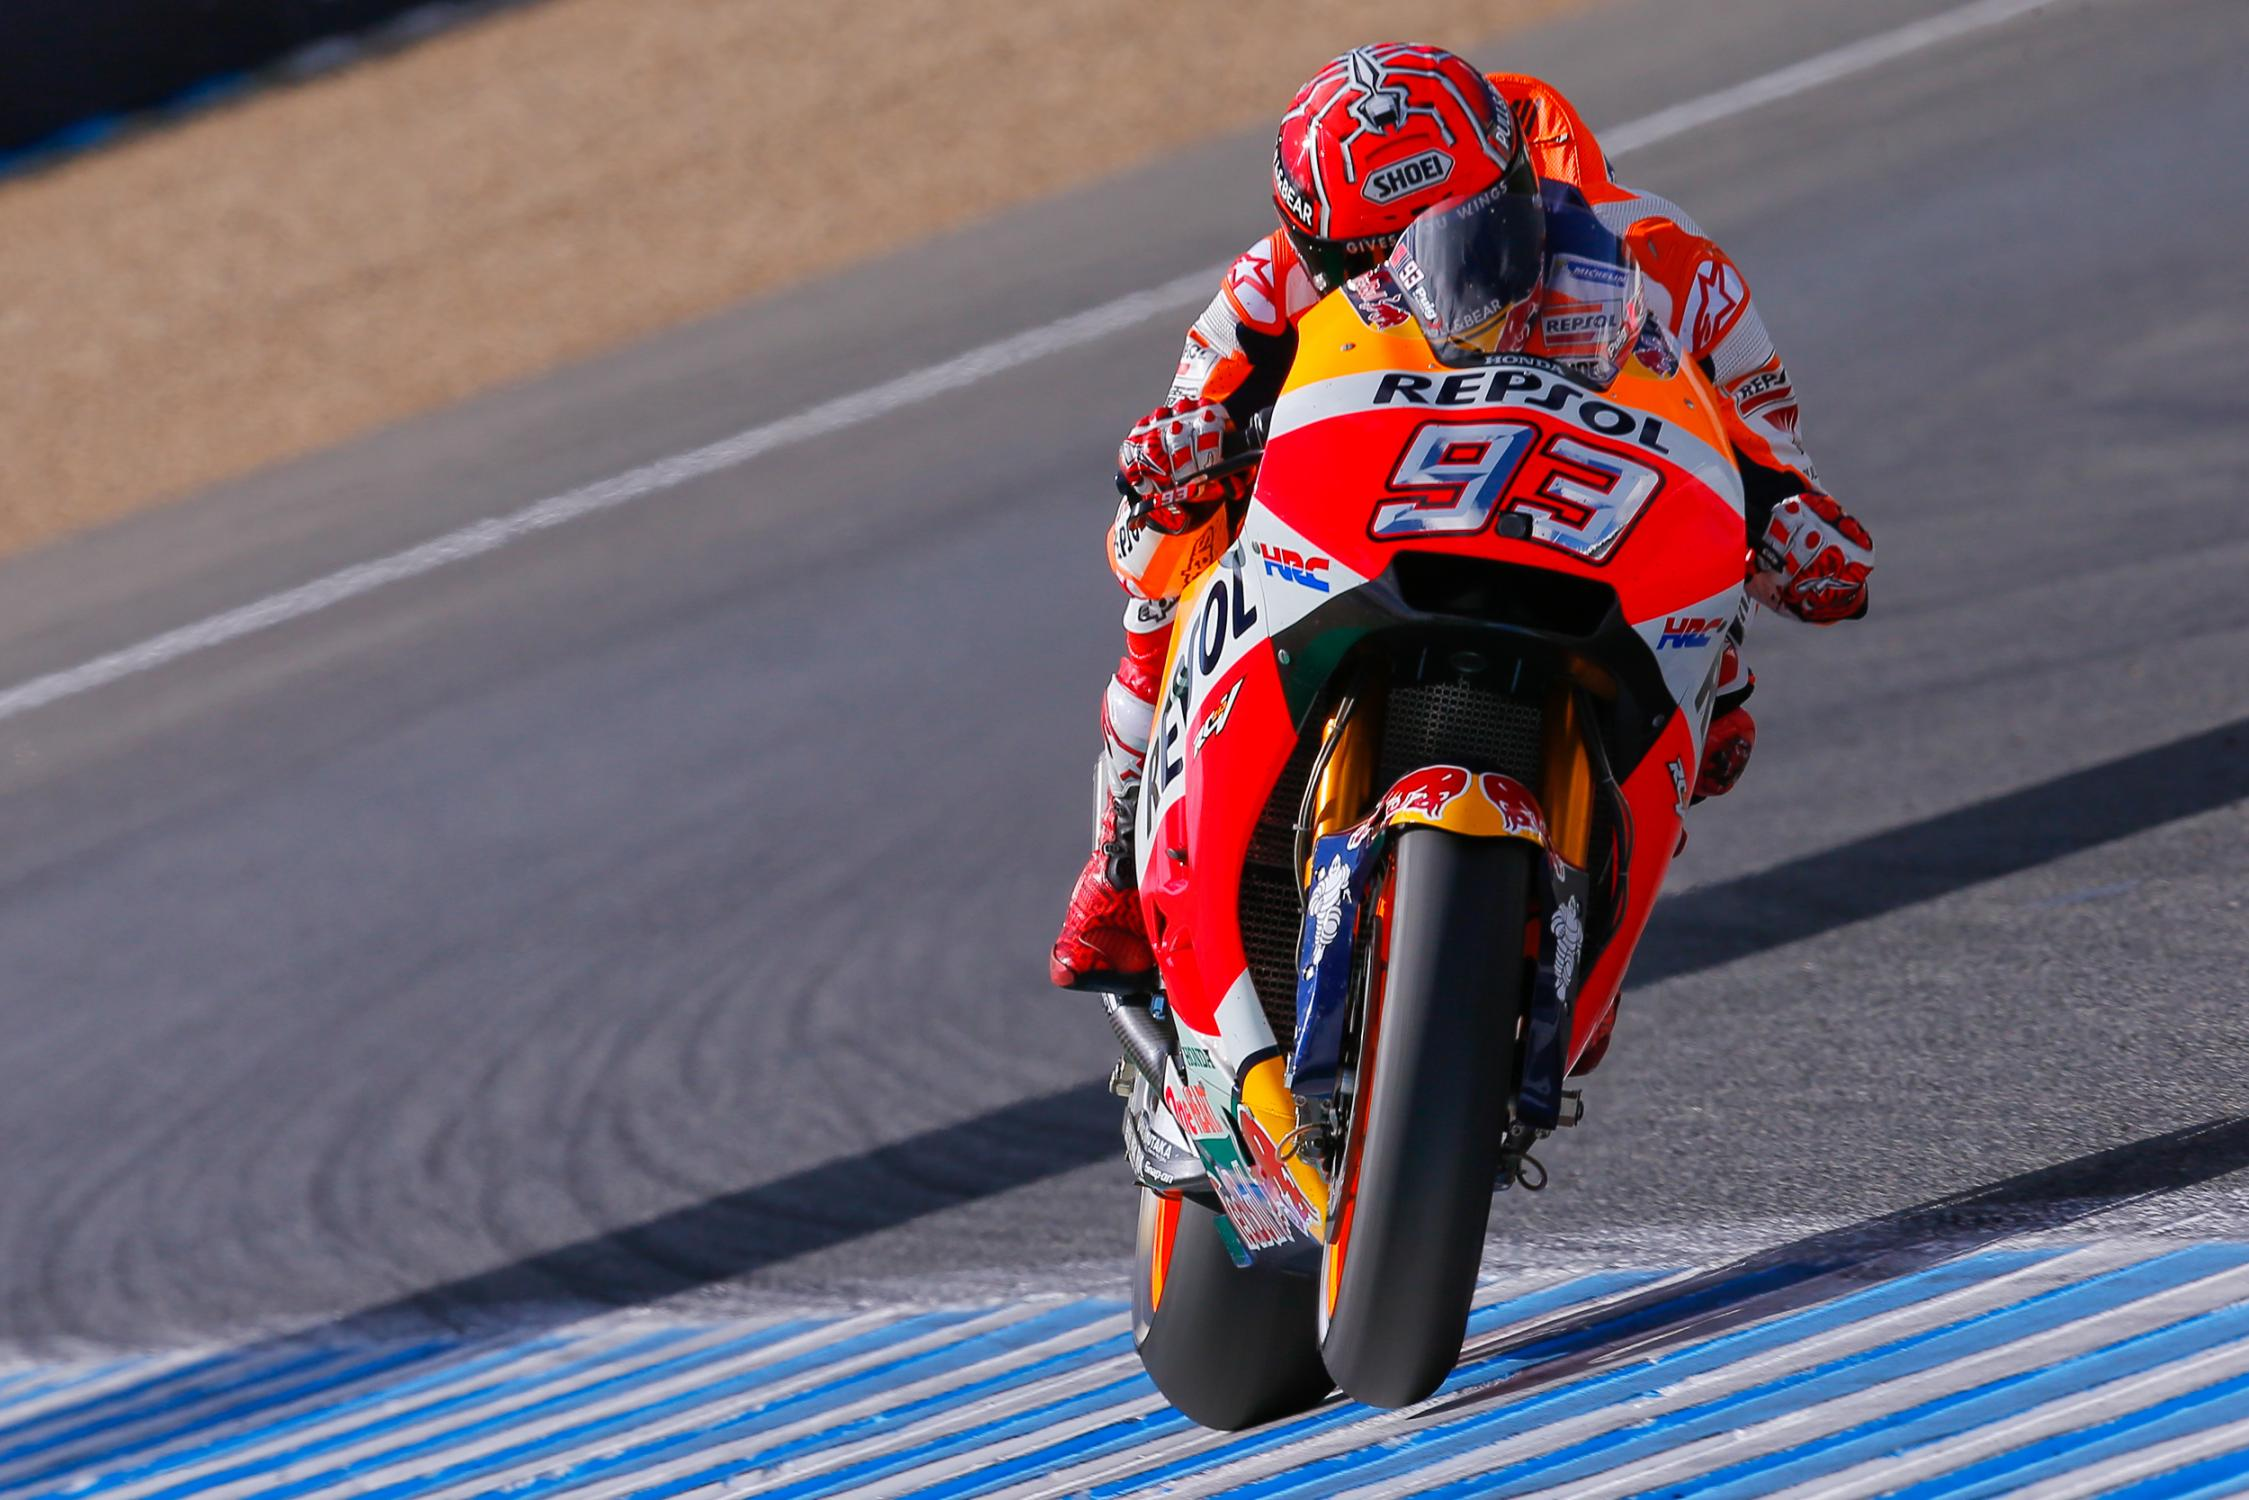 07313_gpjerez_motogp_action.gallery_full_top_fullscreen